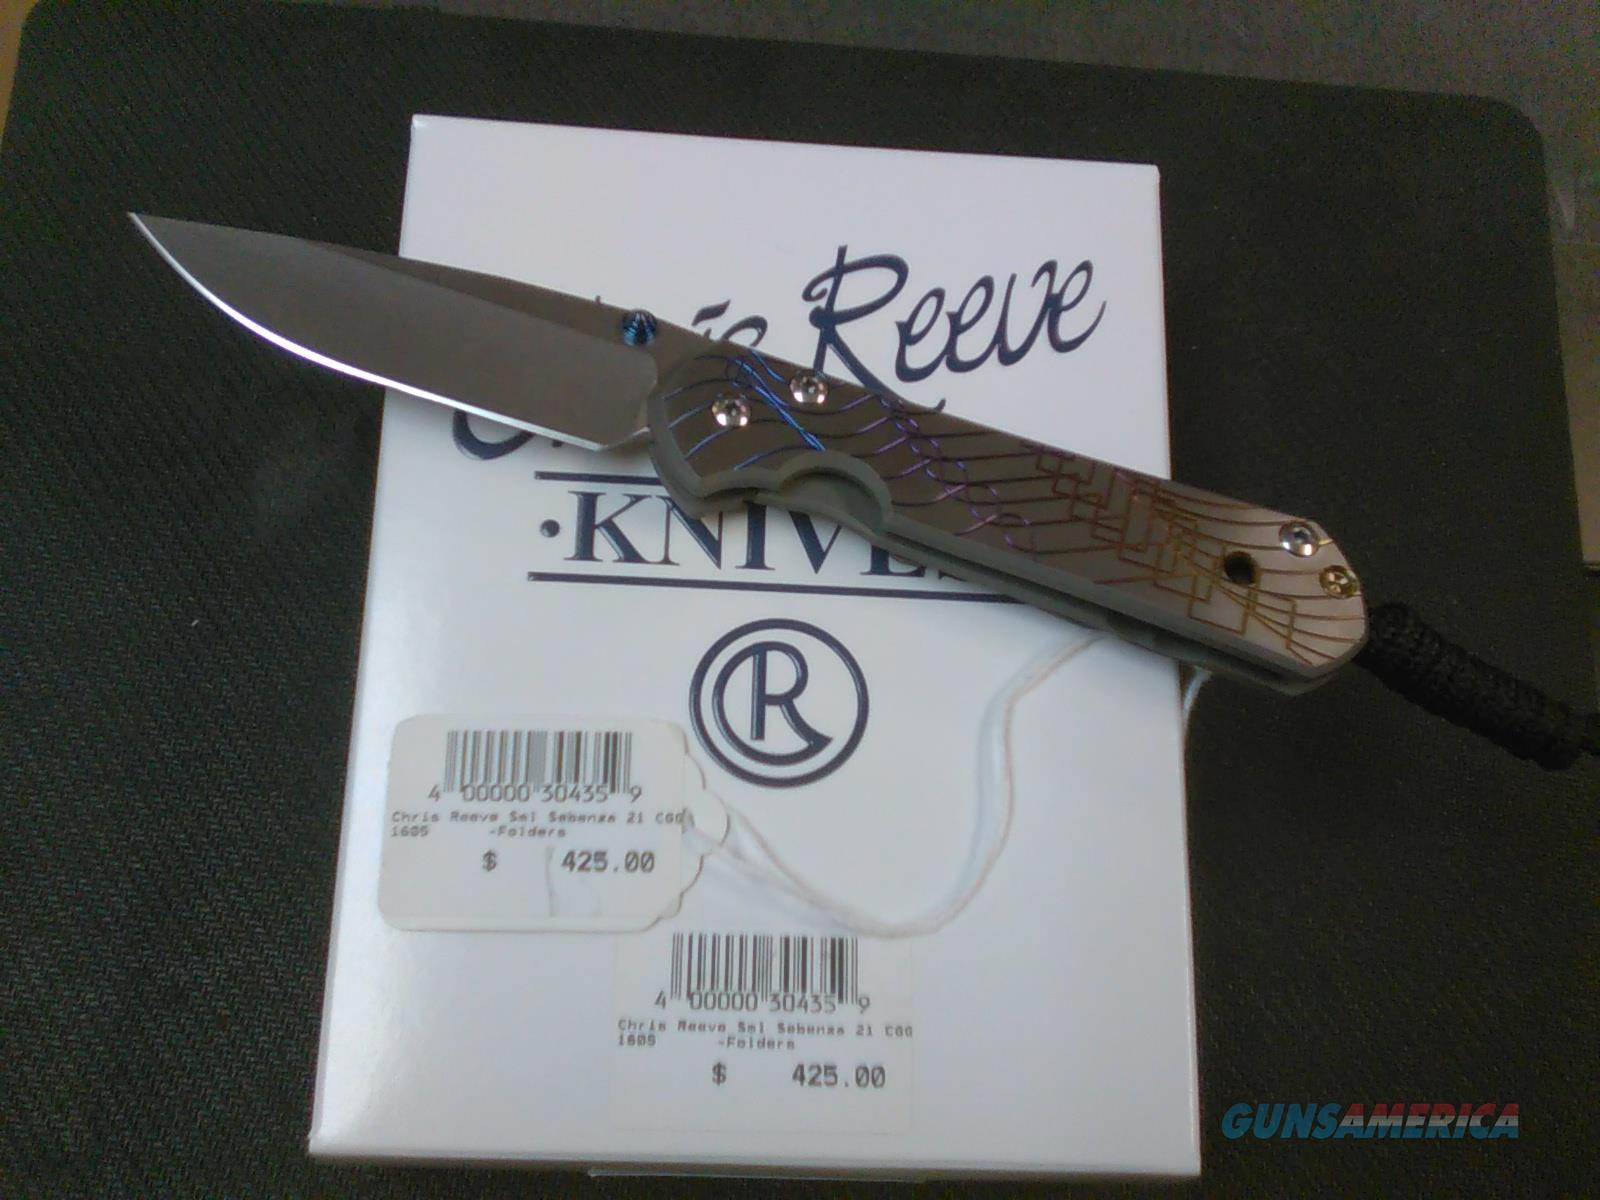 Chris Reeve Small Sebenza 21 CGG NO CC FEES  Non-Guns > Knives/Swords > Knives > Folding Blade > Hand Made